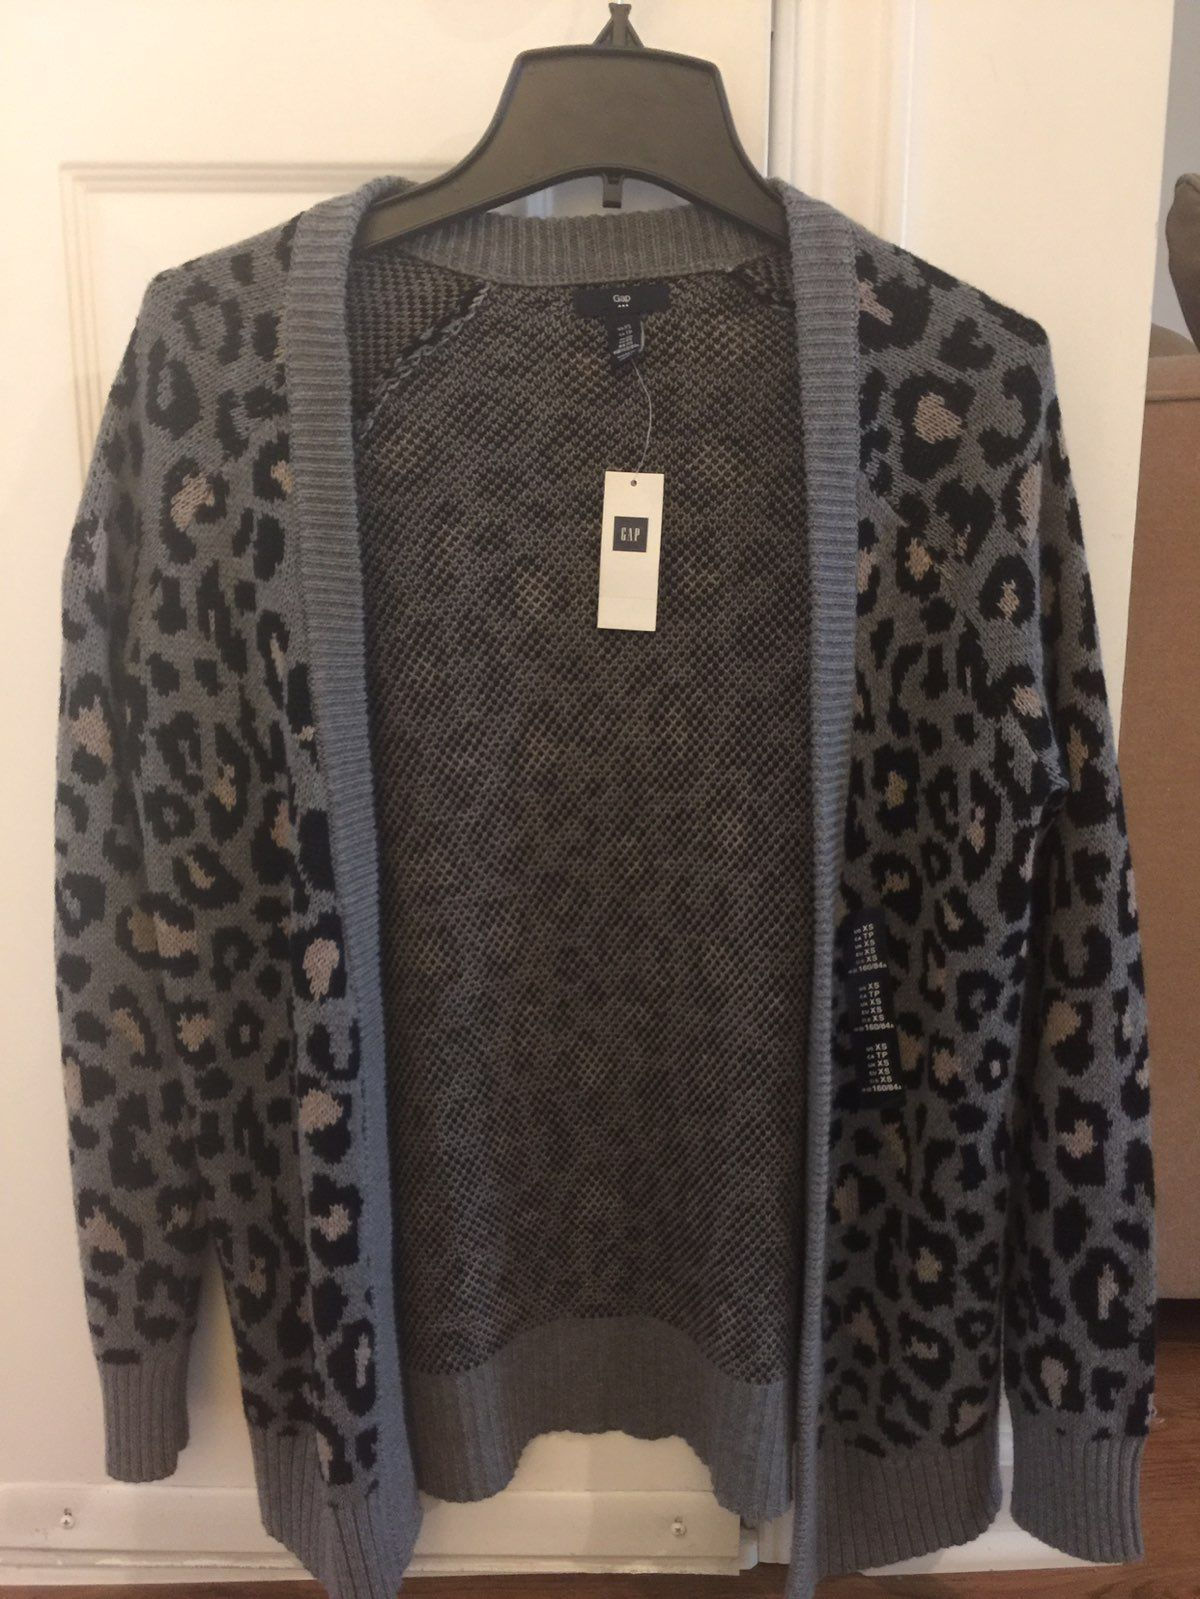 Gap Leopard Print Open Cardigan New - Mercari: BUY & SELL THINGS ...